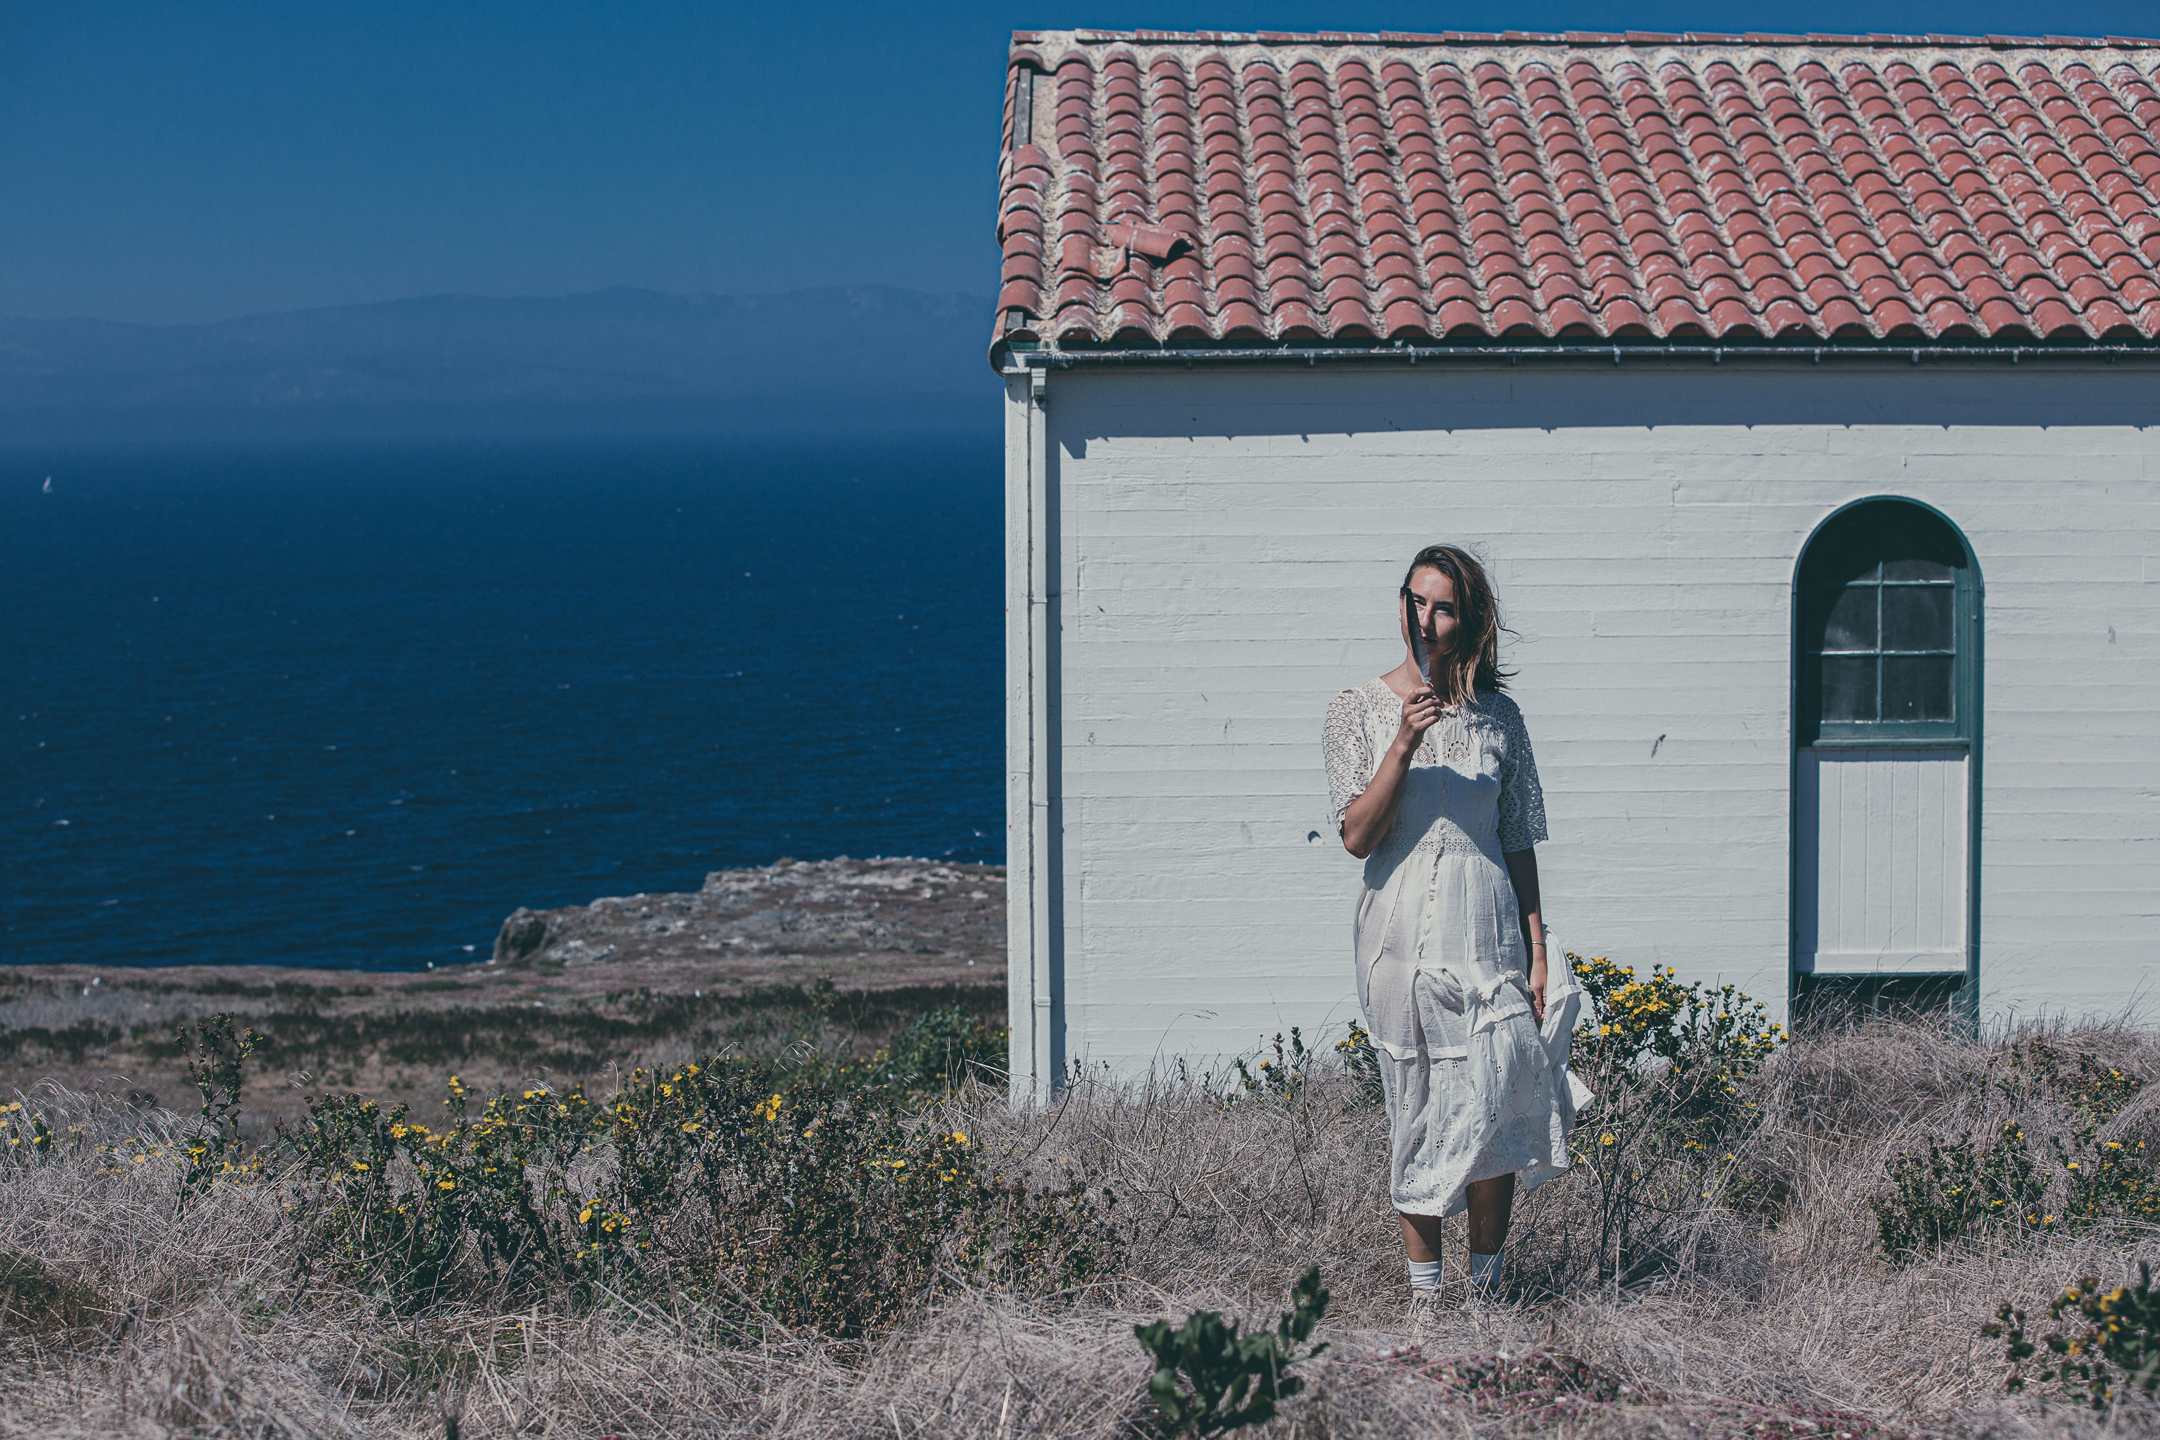 LIFESTYLE photos: Free as a Feather, Channel Islands